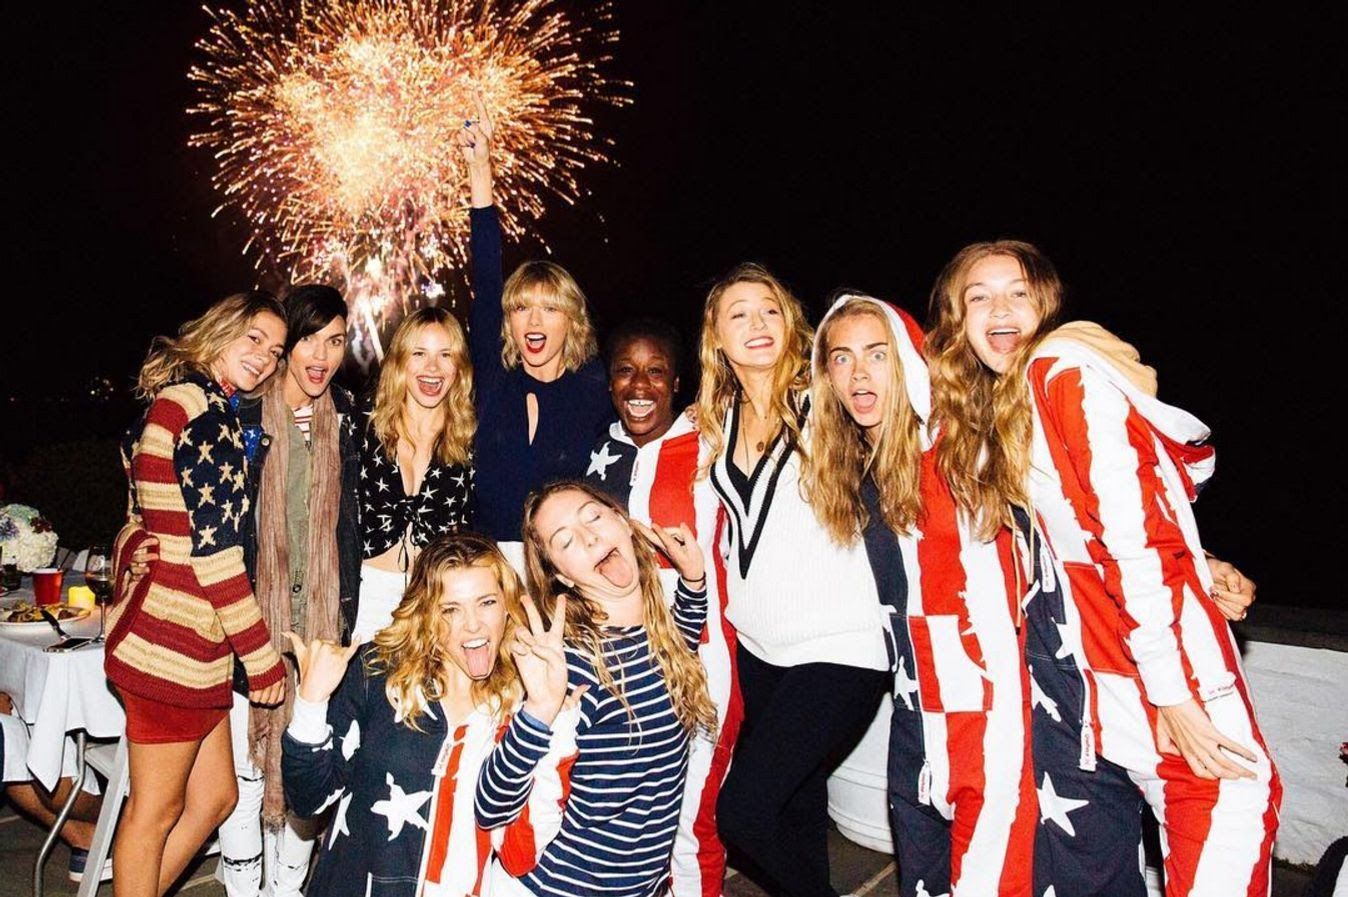 How Real Was Taylor Swift's Fourth of July Party? An Investigation